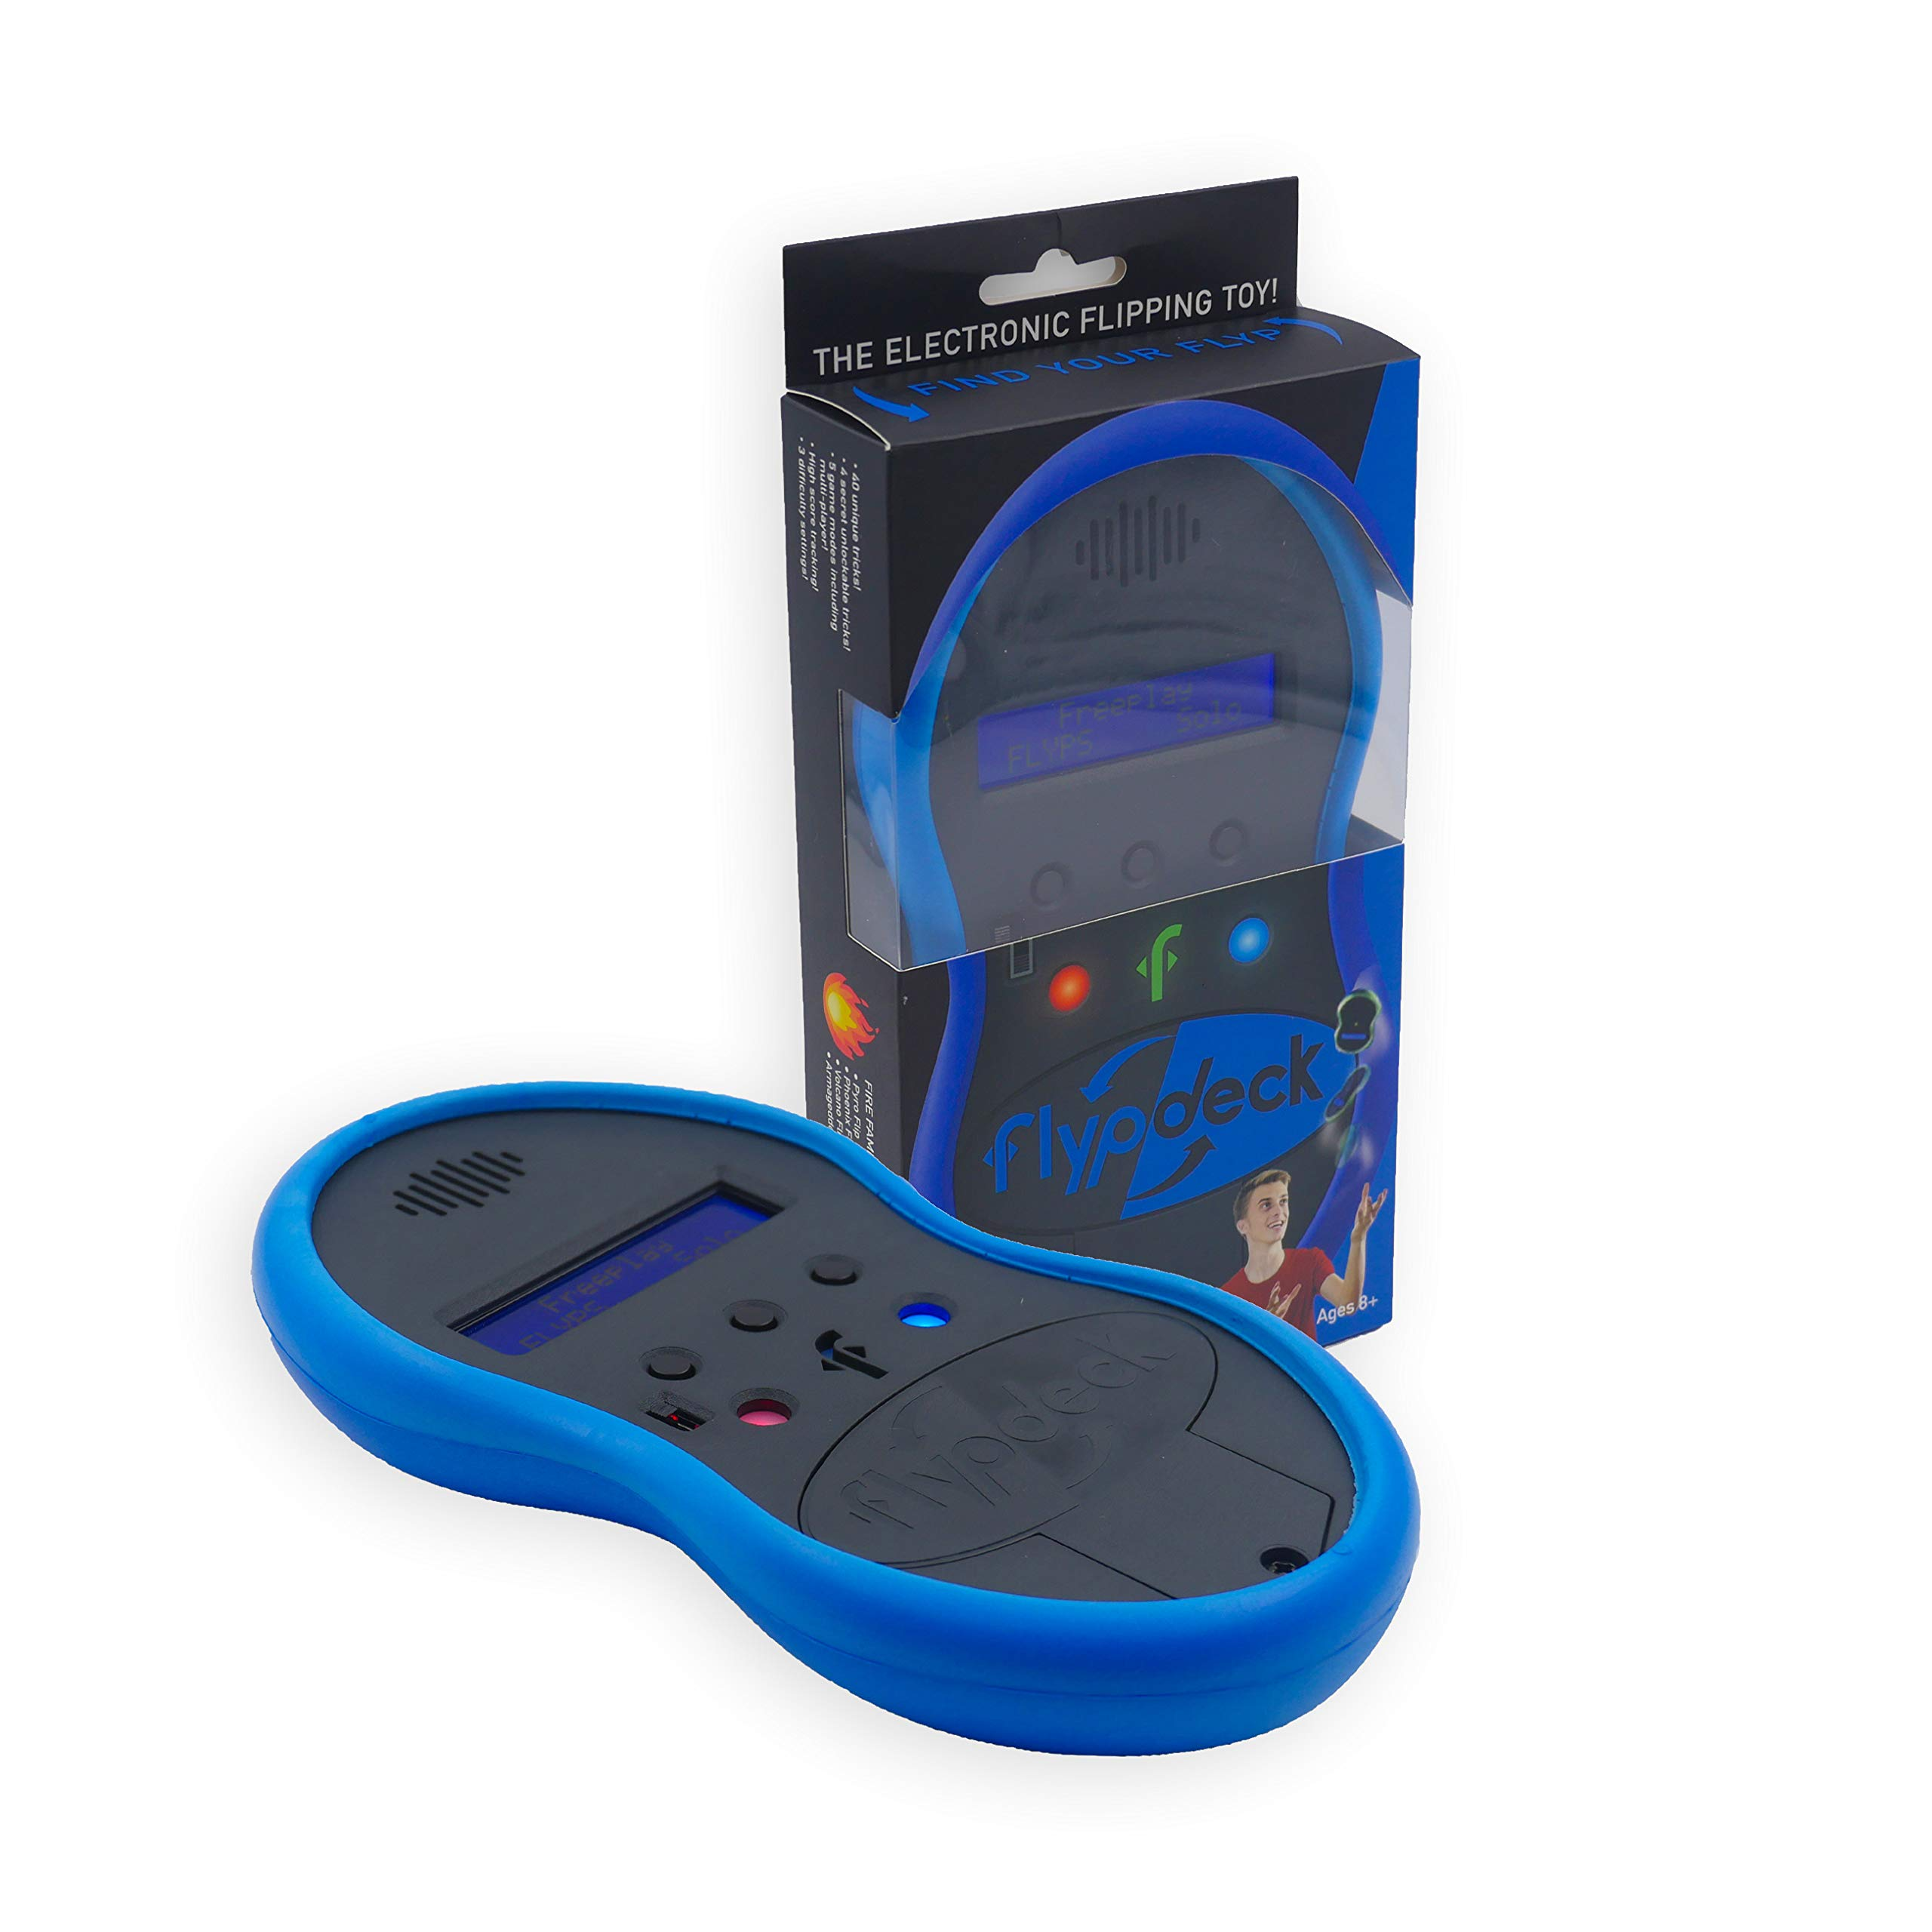 Flypdeck - The World's First Handheld Electronic Flipping Action Toy Game - As Seen On Kickstarter (Blue)